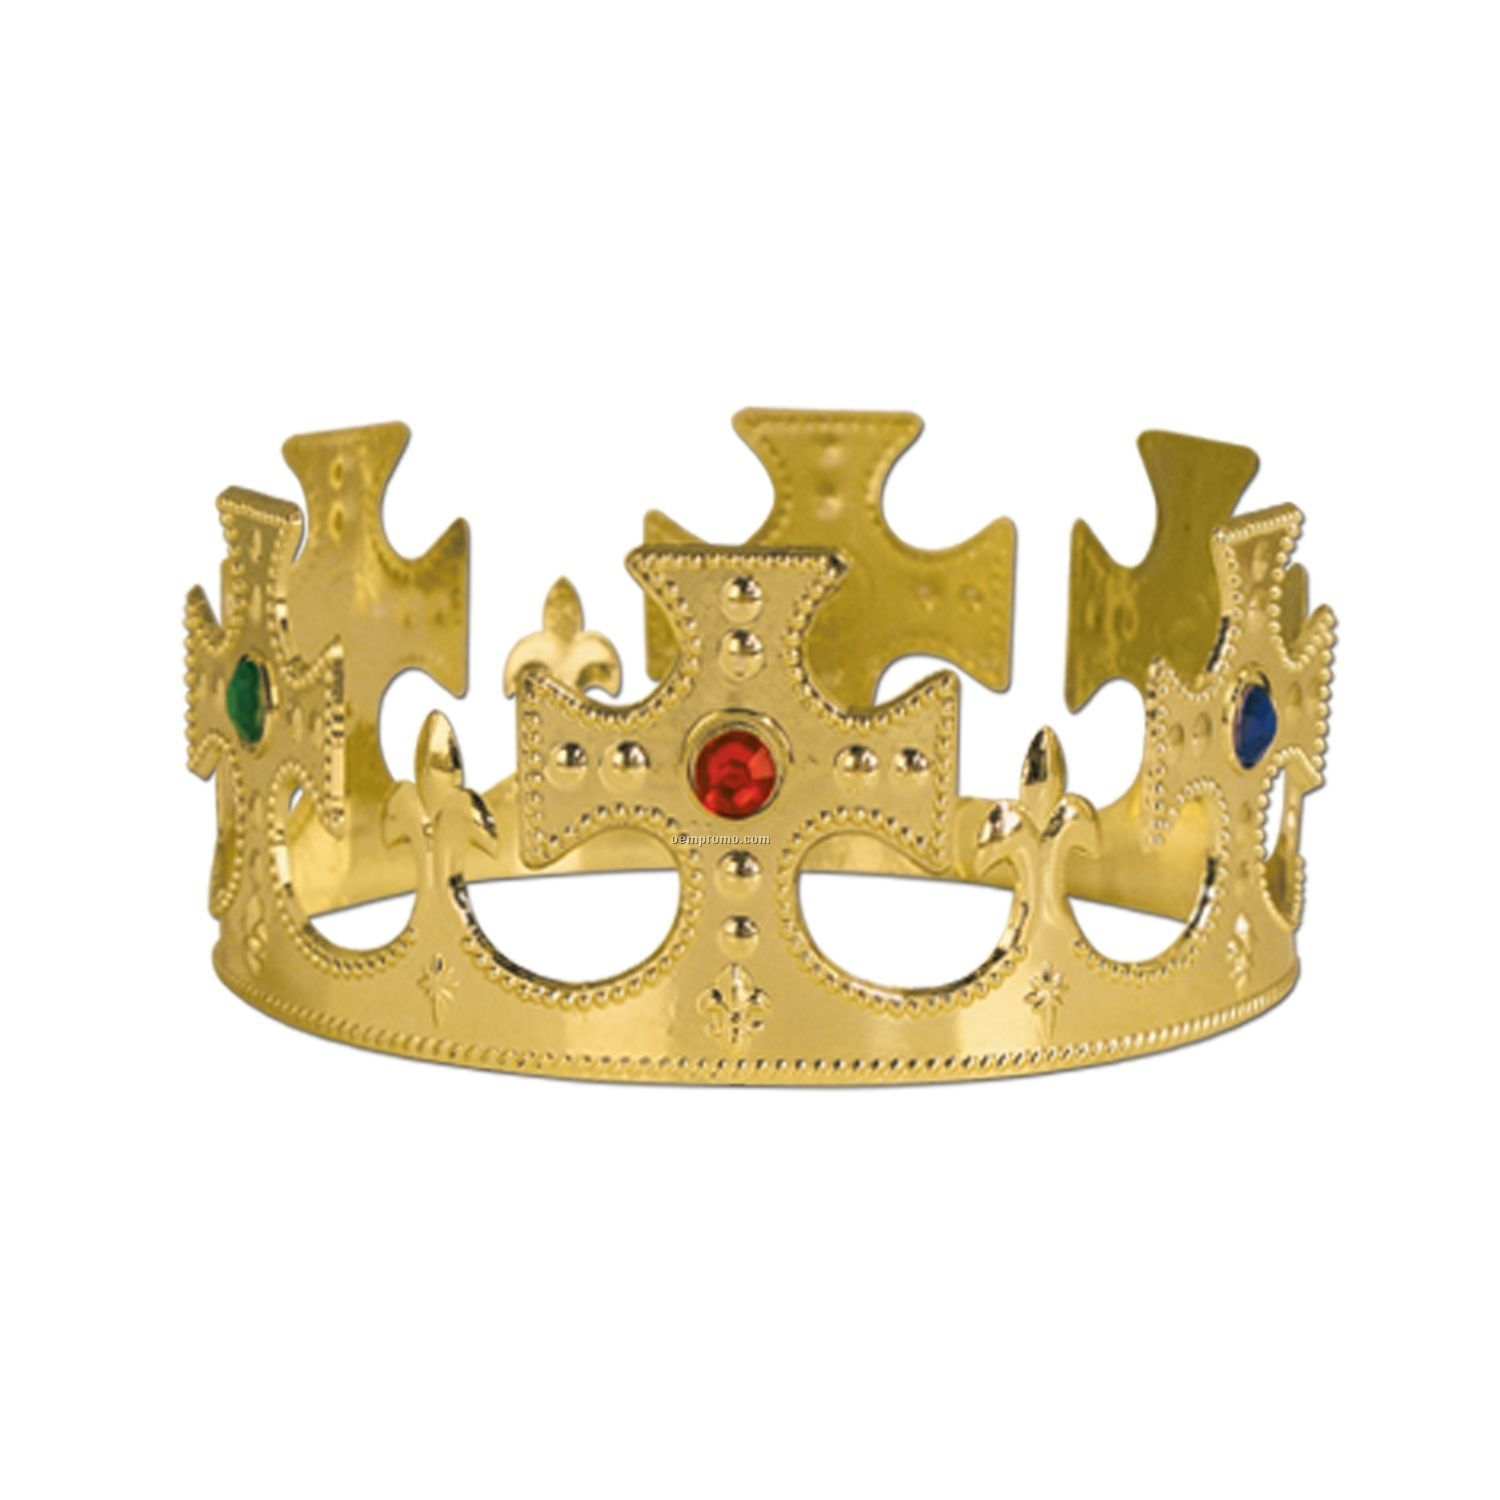 Plastic Jeweled Kings Crown